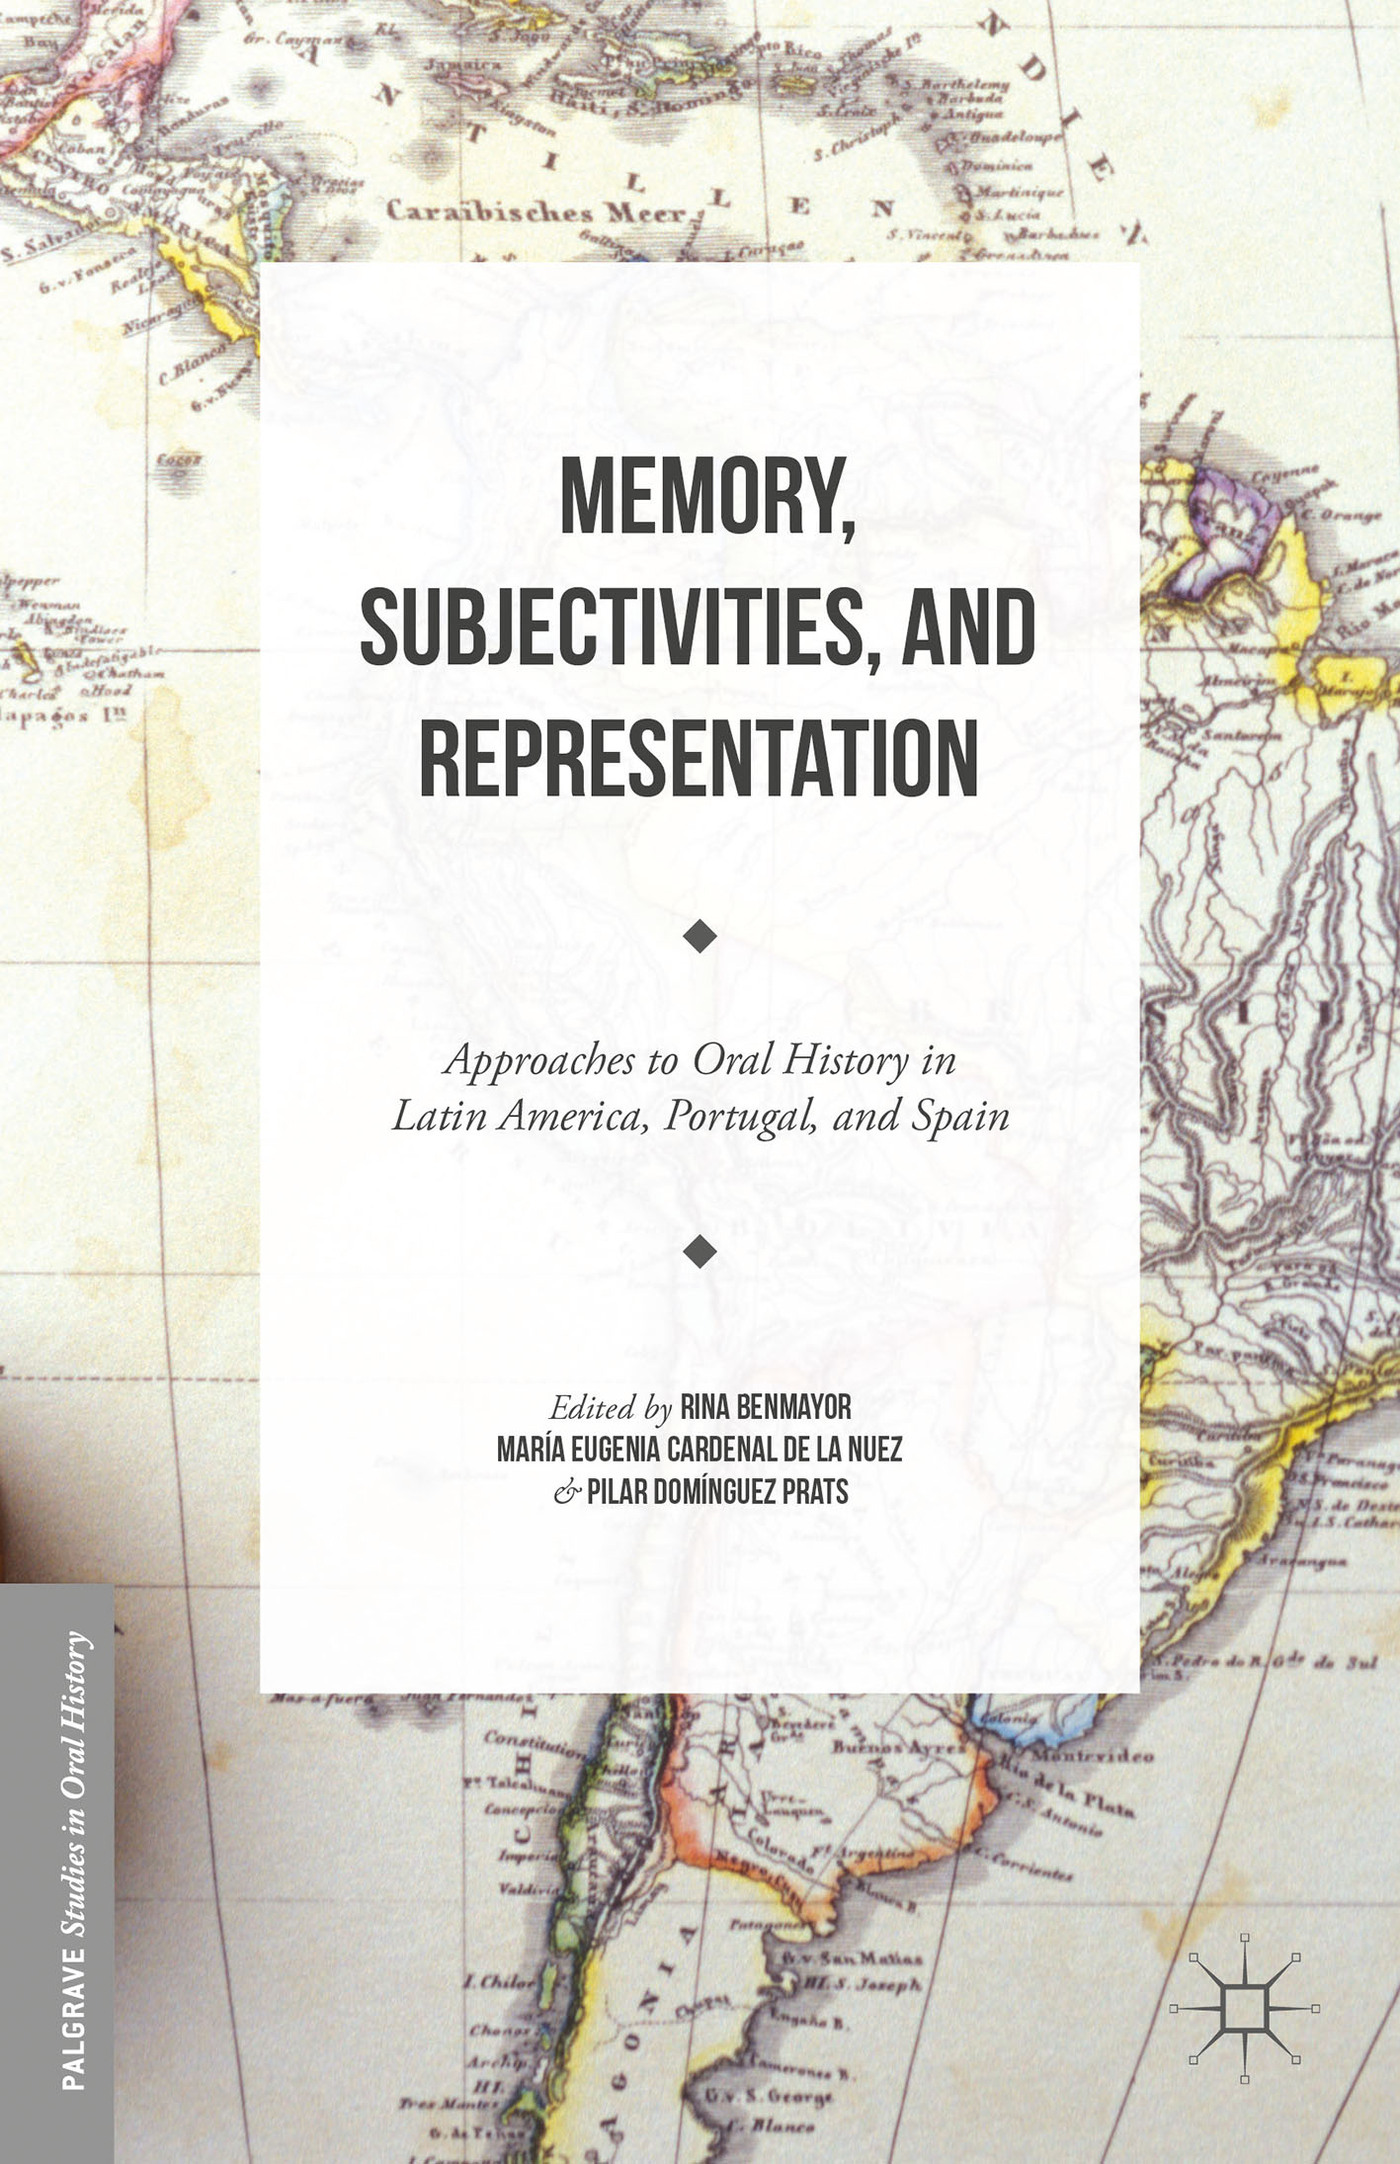 Memory, Subjectivities, and Representation Approaches to Oral History in Latin America, Portugal, and Spain